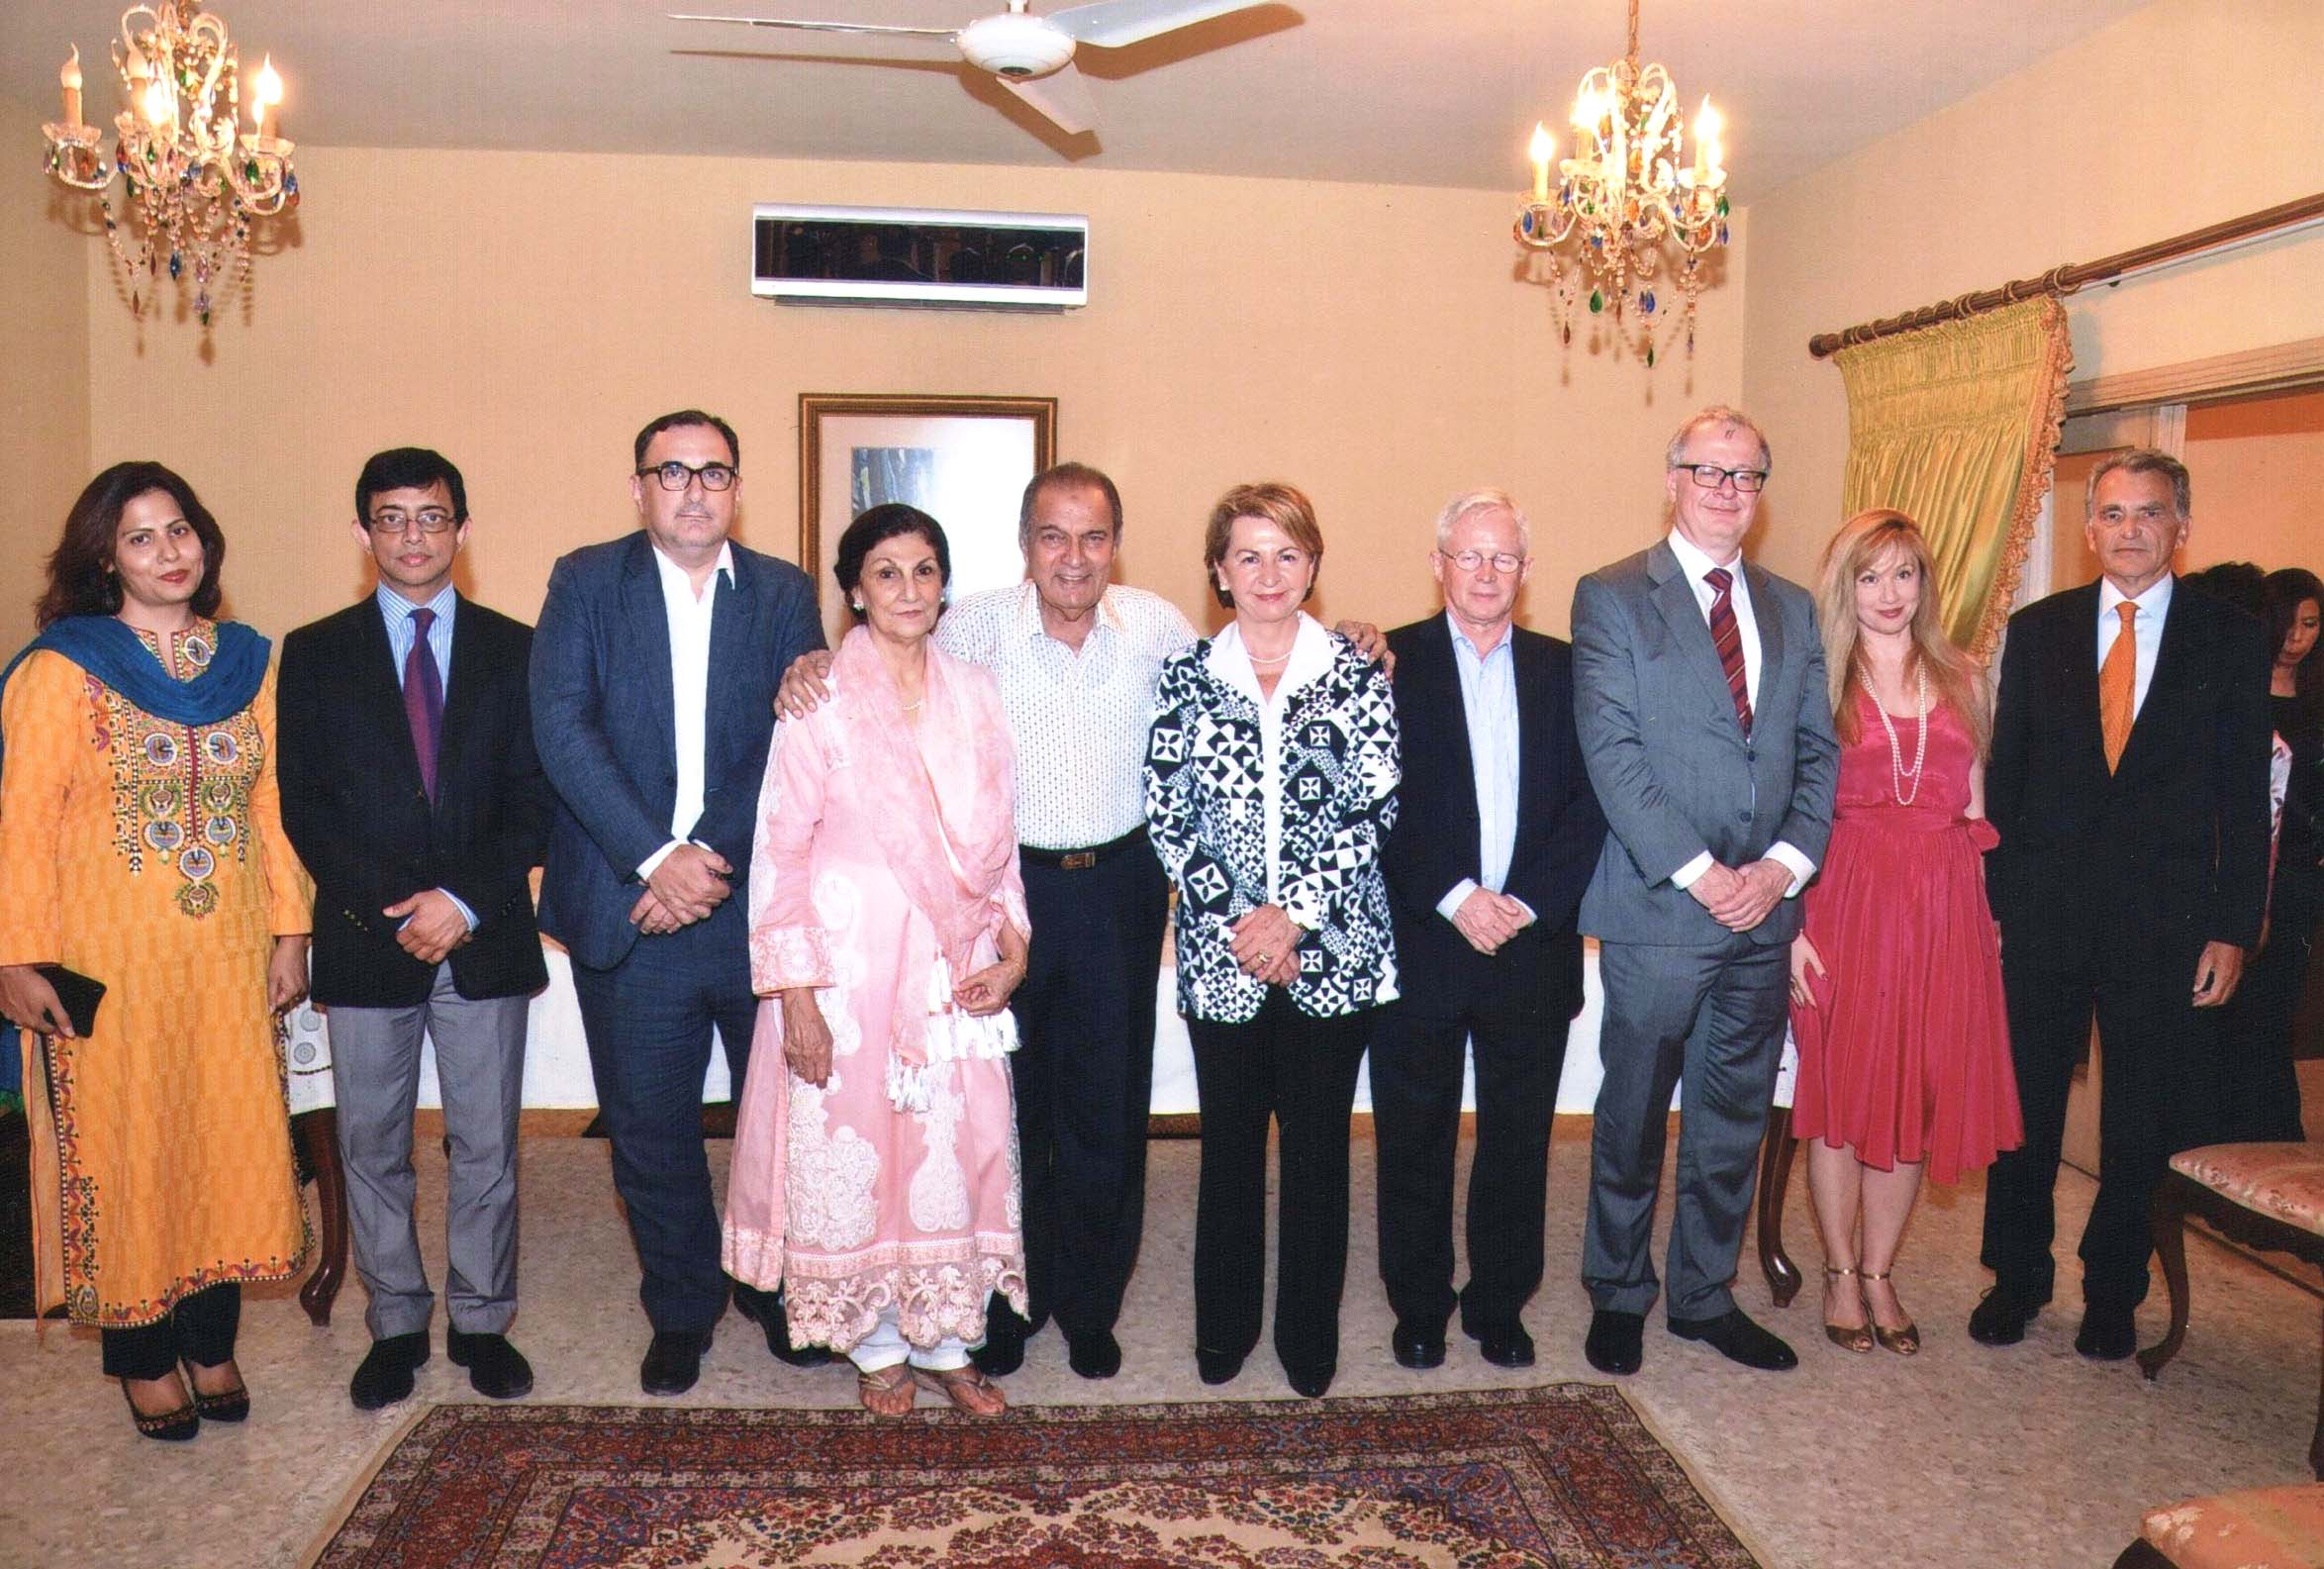 From left to right: Mrs. Shakeel MAPARA, Mr. Shakeel MAPARA, Mr. Giulio IAZEOLLA, Acting Consul of Italy, Mrs. Nargis Kader Jaffer, Host Mr. Abdul Kader Jaffer, Her Excellency, Mrs. Martine DORANCE, Ambassador of France to Pakistan, Mr. Dall'Orso François, French Consul General, Dr. Tilo Klinner German Consul General, Mrs. Tilo Klinner, Mr. Dorance.